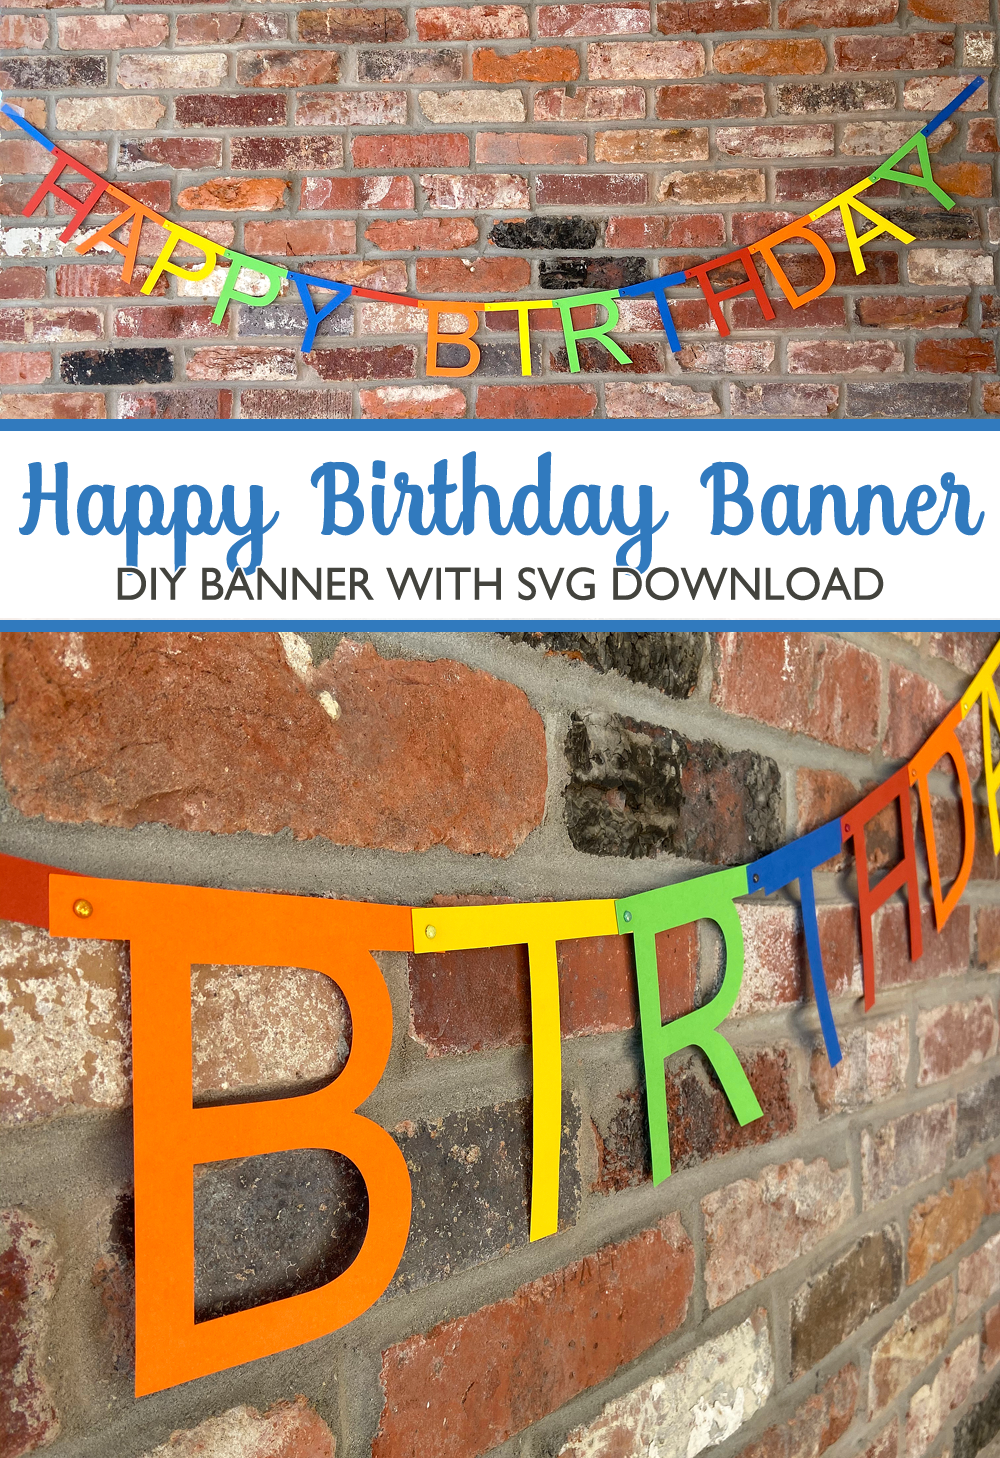 Pazzles DIY Happy Birthday Banner with SVG instant download. Design by Sara Weber.